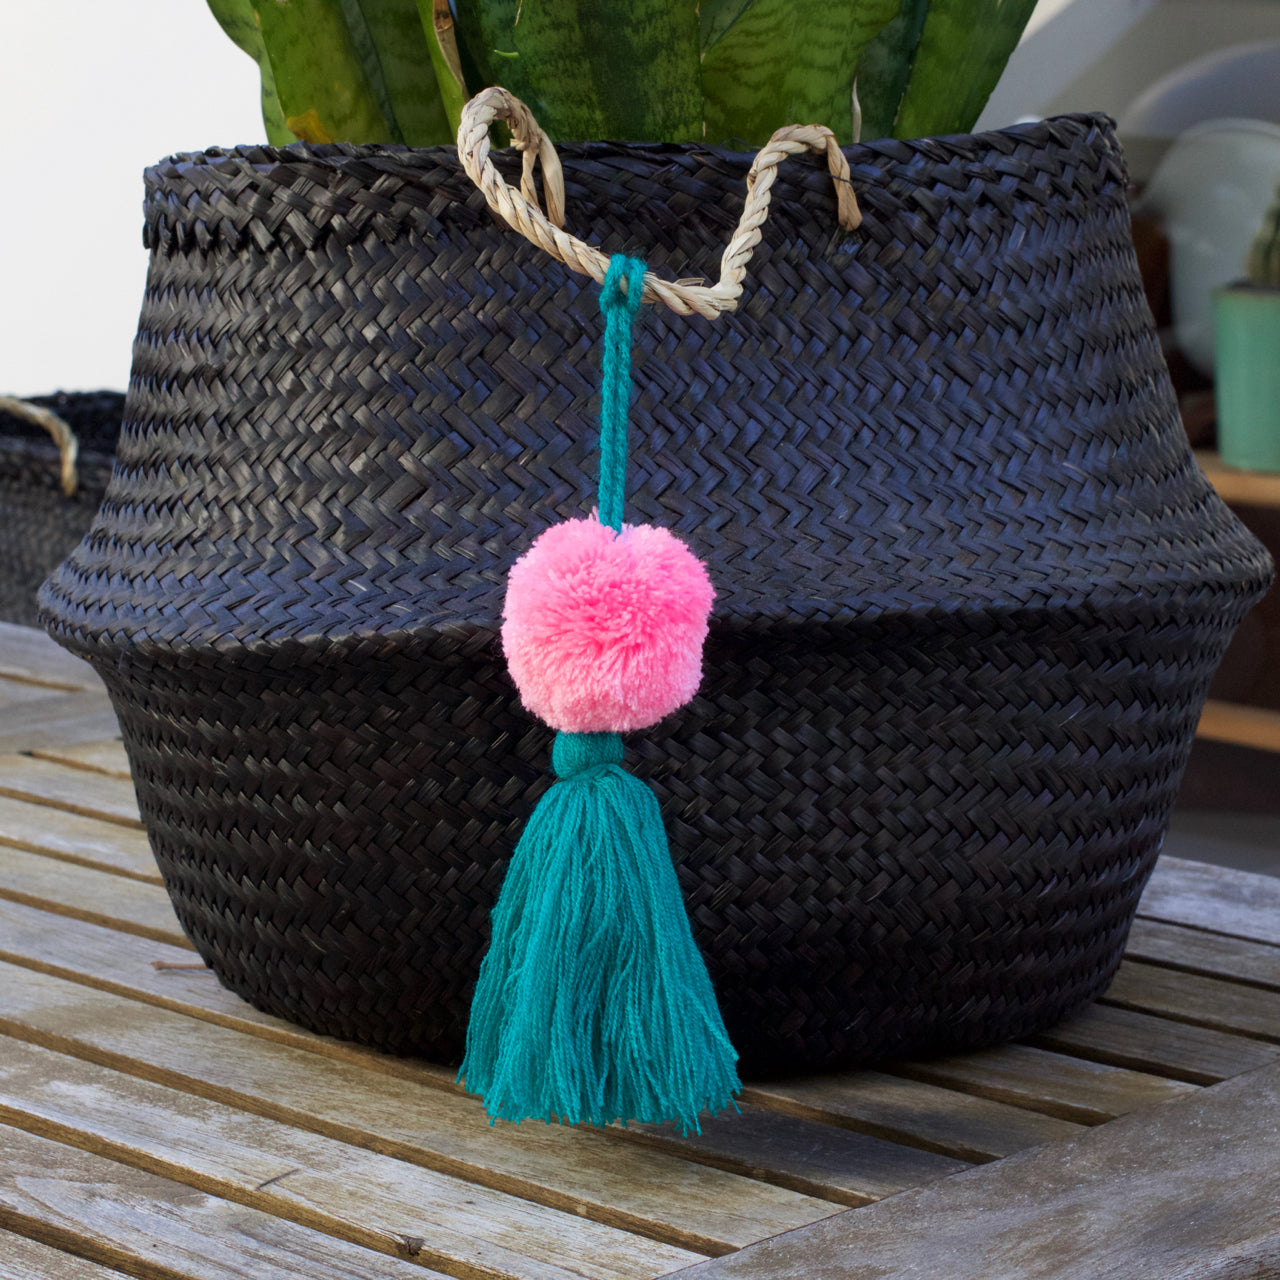 Pom Pom 01  Decor Turquoise & Pink - Cielo Collective handmade Mexico Guatemala